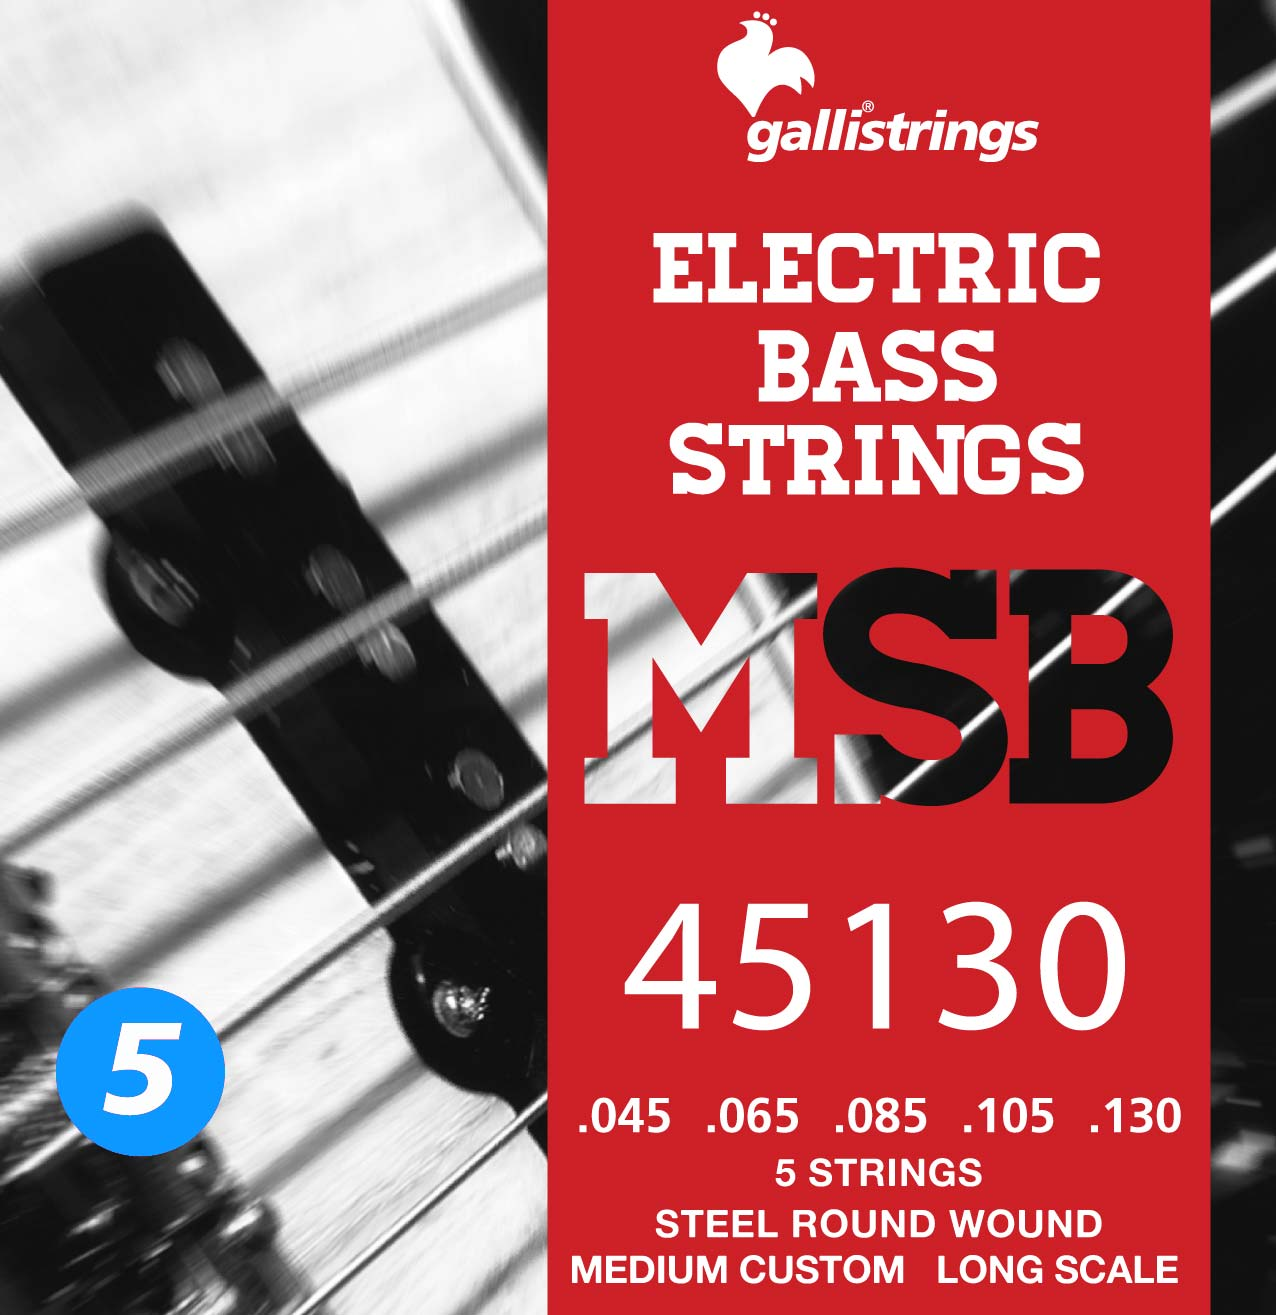 MSB45130 5 strings Medium Custom